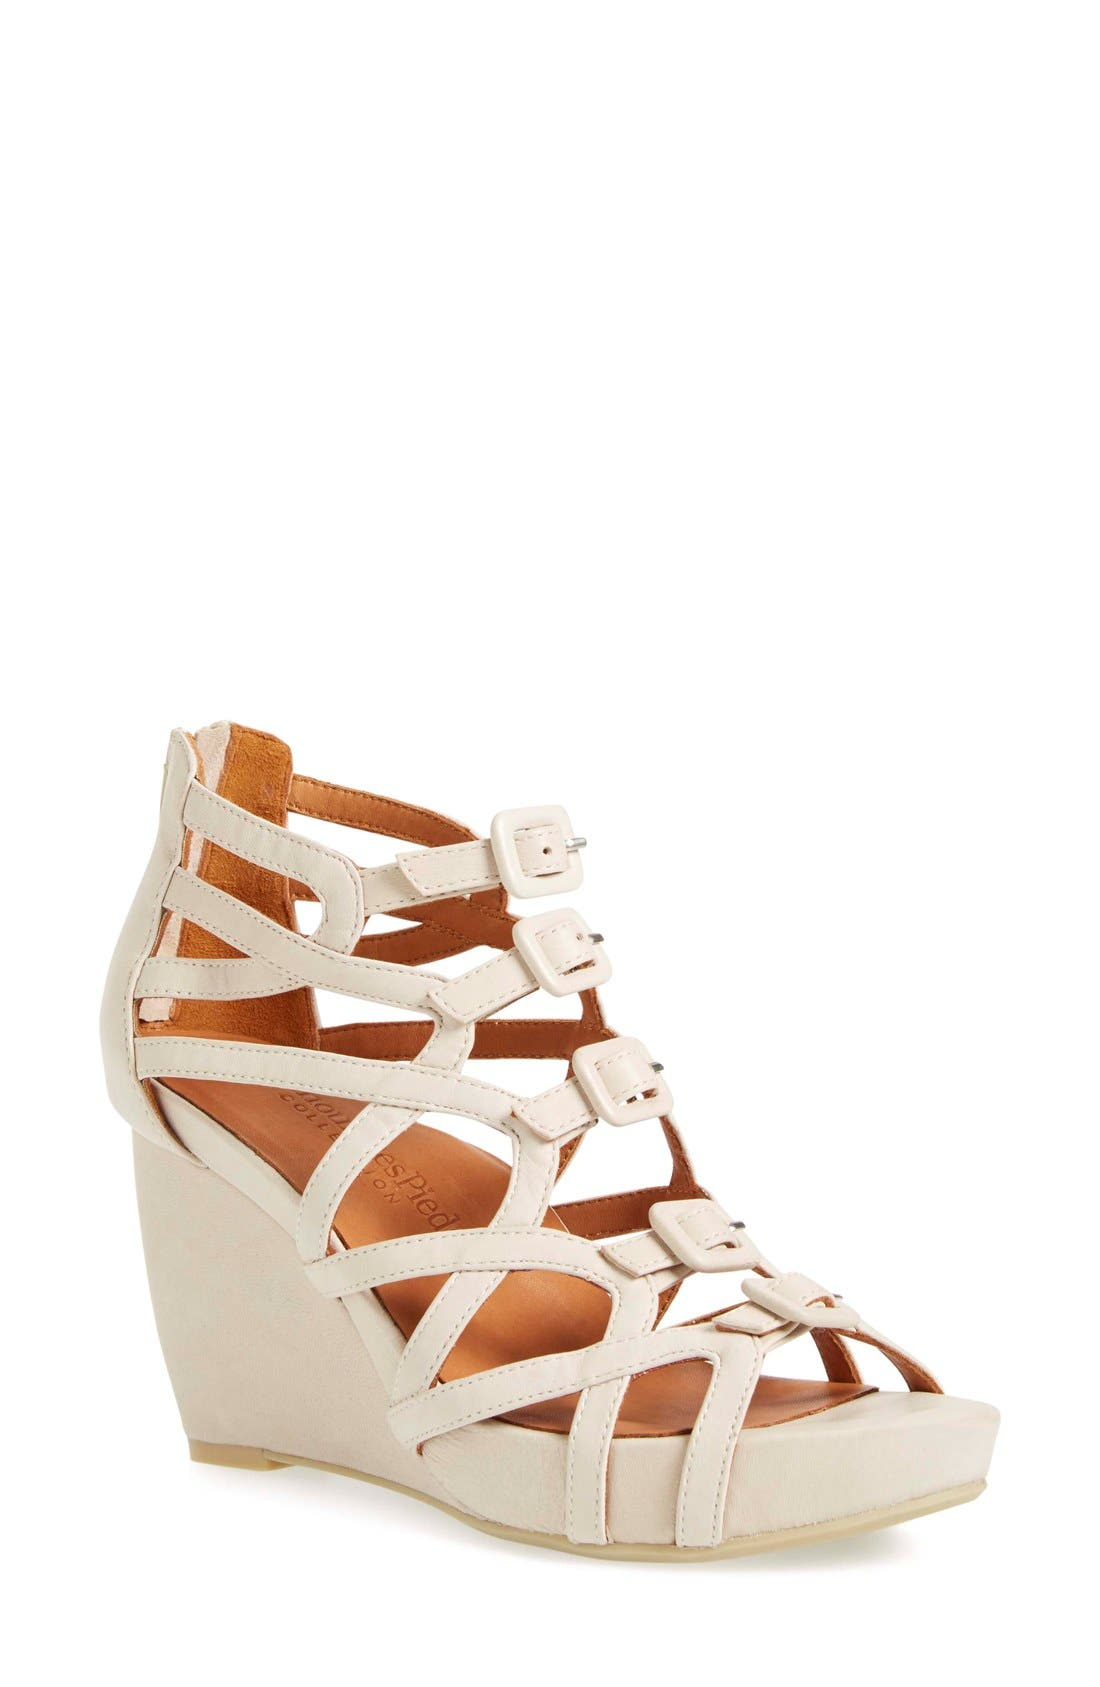 Ivanna' Gladiator Wedge Sandal,                         Main,                         color,